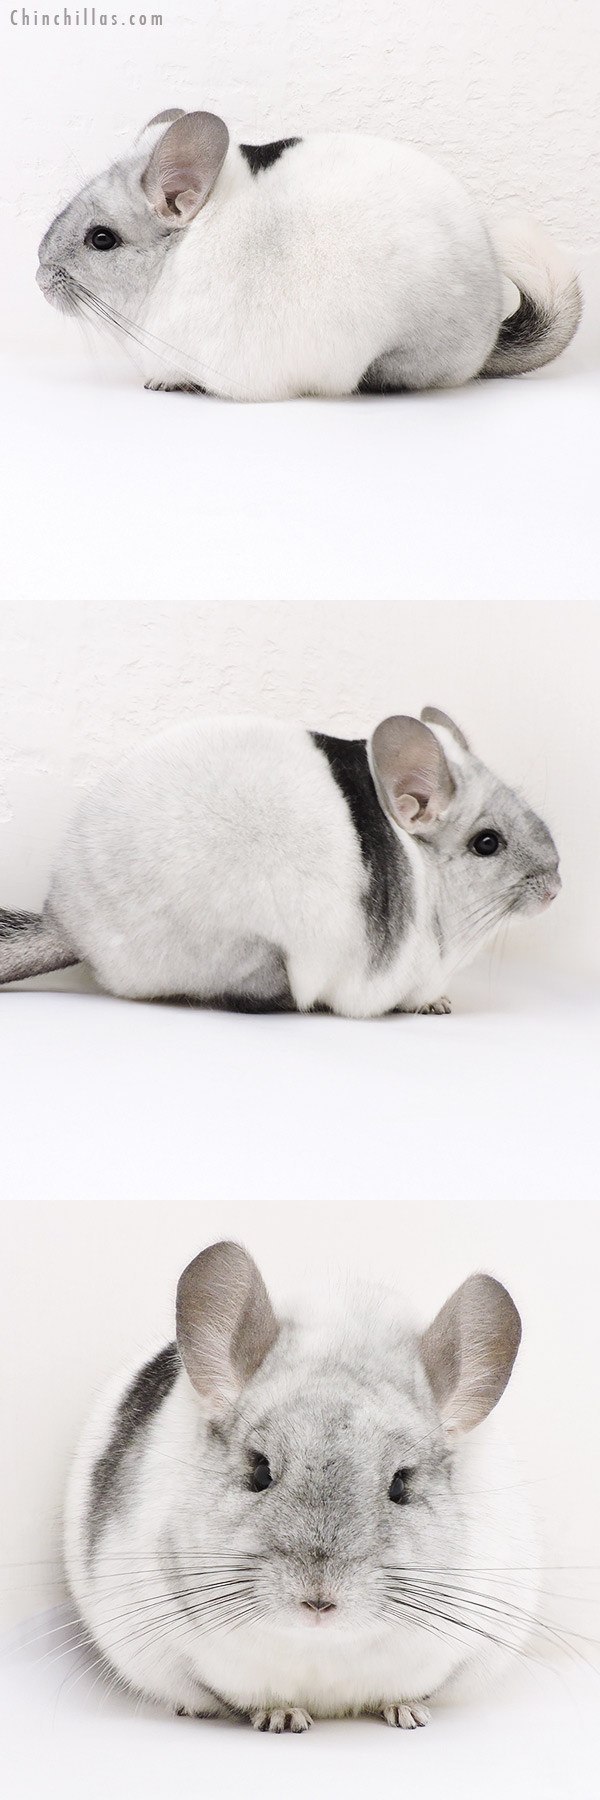 17021 Large Blocky Premium Production Quality Unique White Mosaic Female Chinchilla